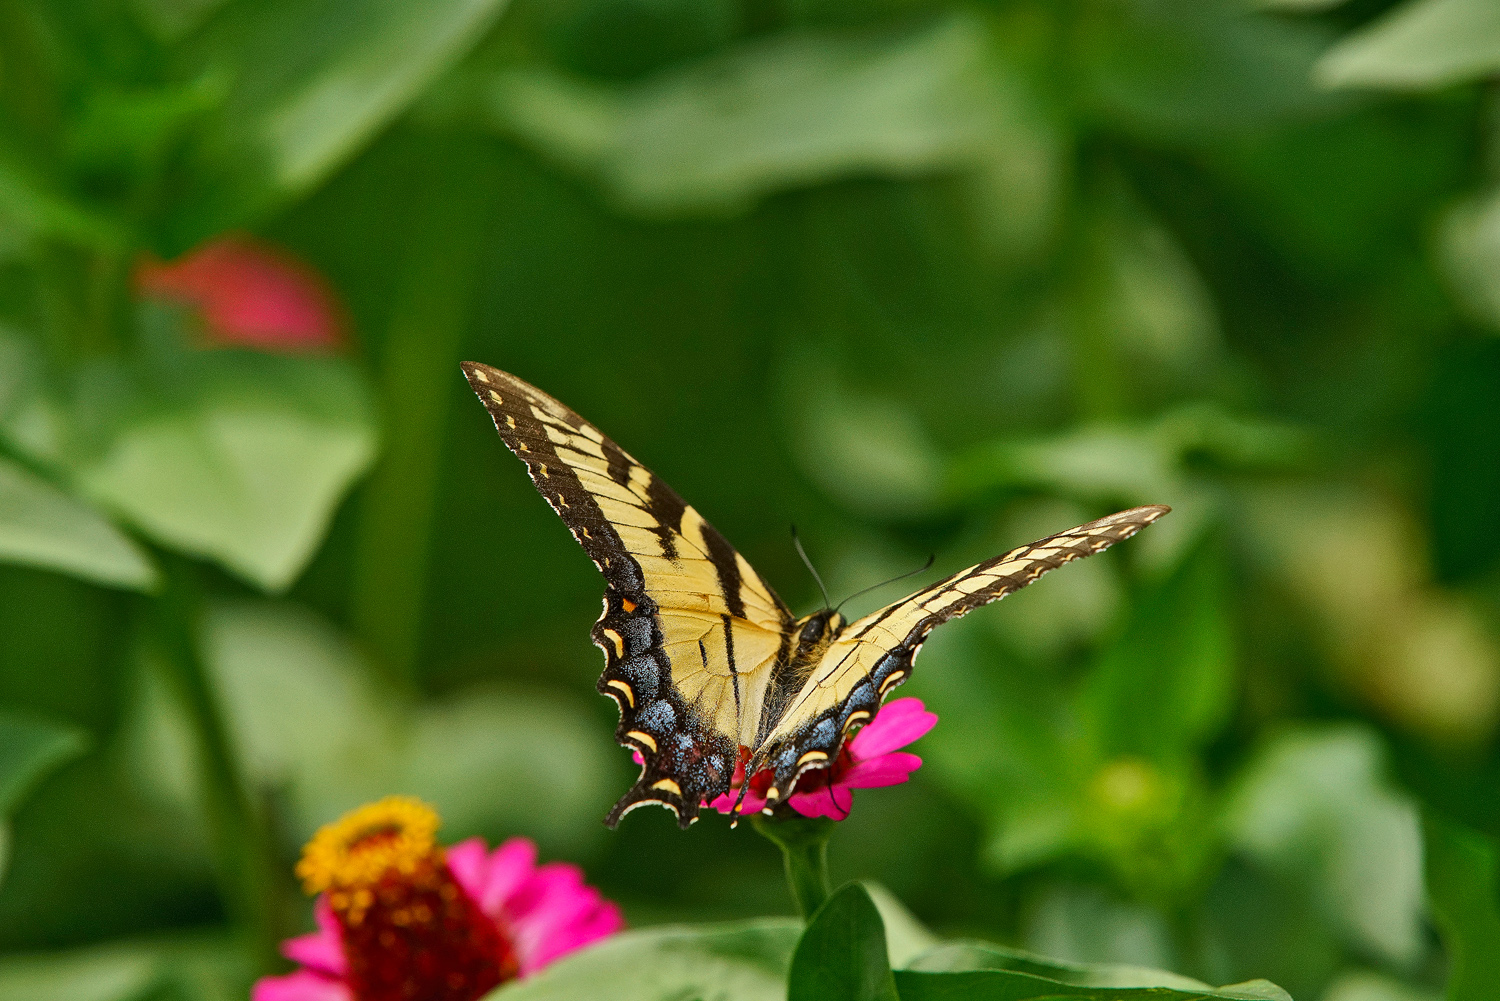 swallowtail in a sea of green dsc aw author sava gregory and verena